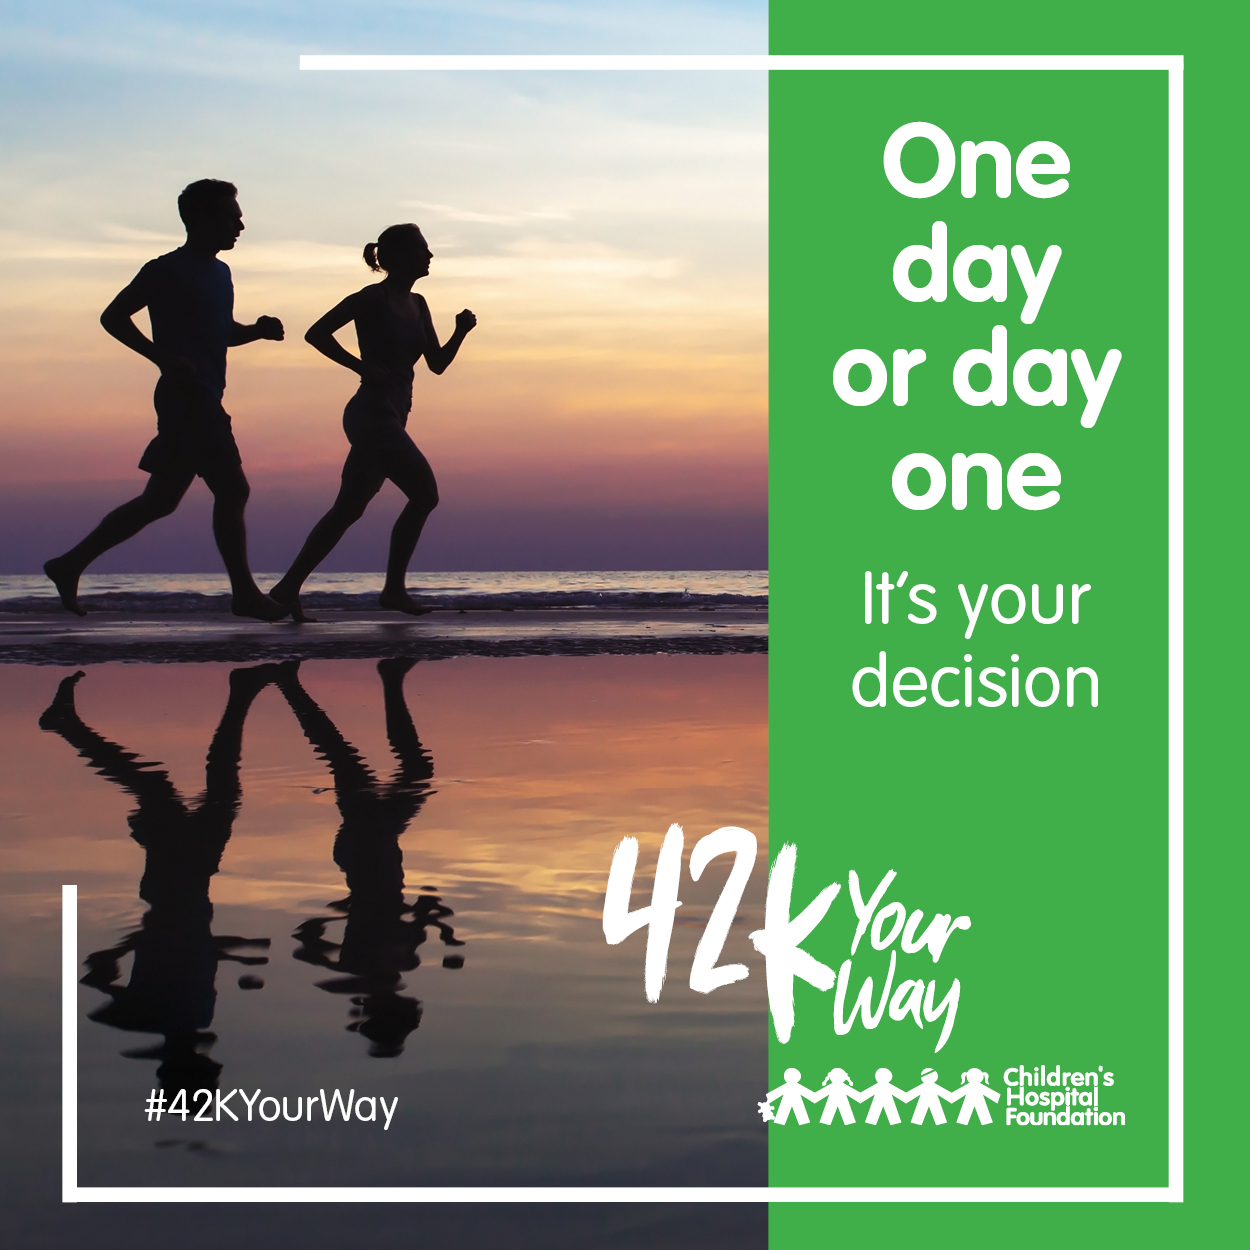 42k Your Way - One Day or Day One